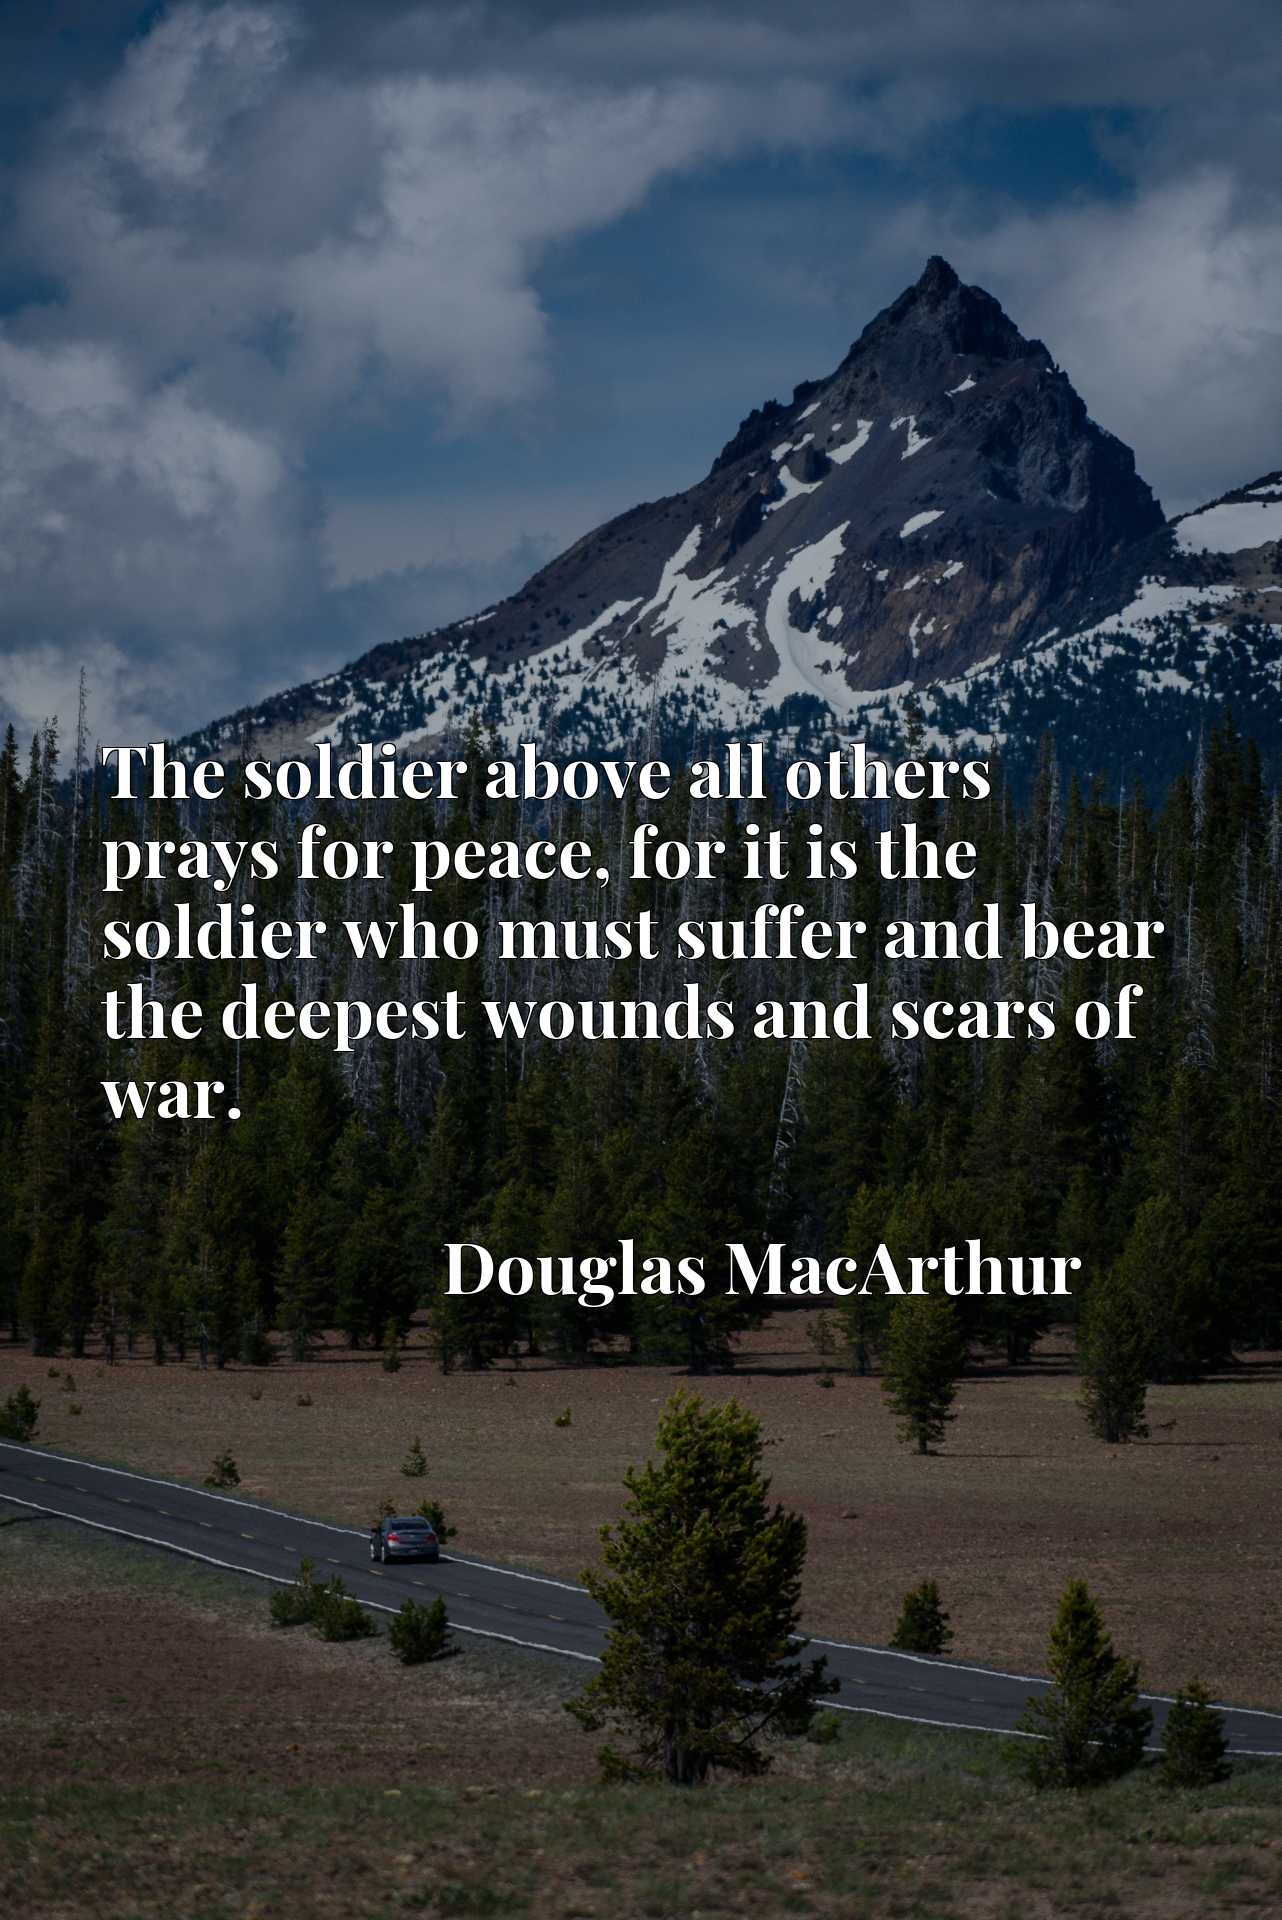 The soldier above all others prays for peace, for it is the soldier who must suffer and bear the deepest wounds and scars of war.